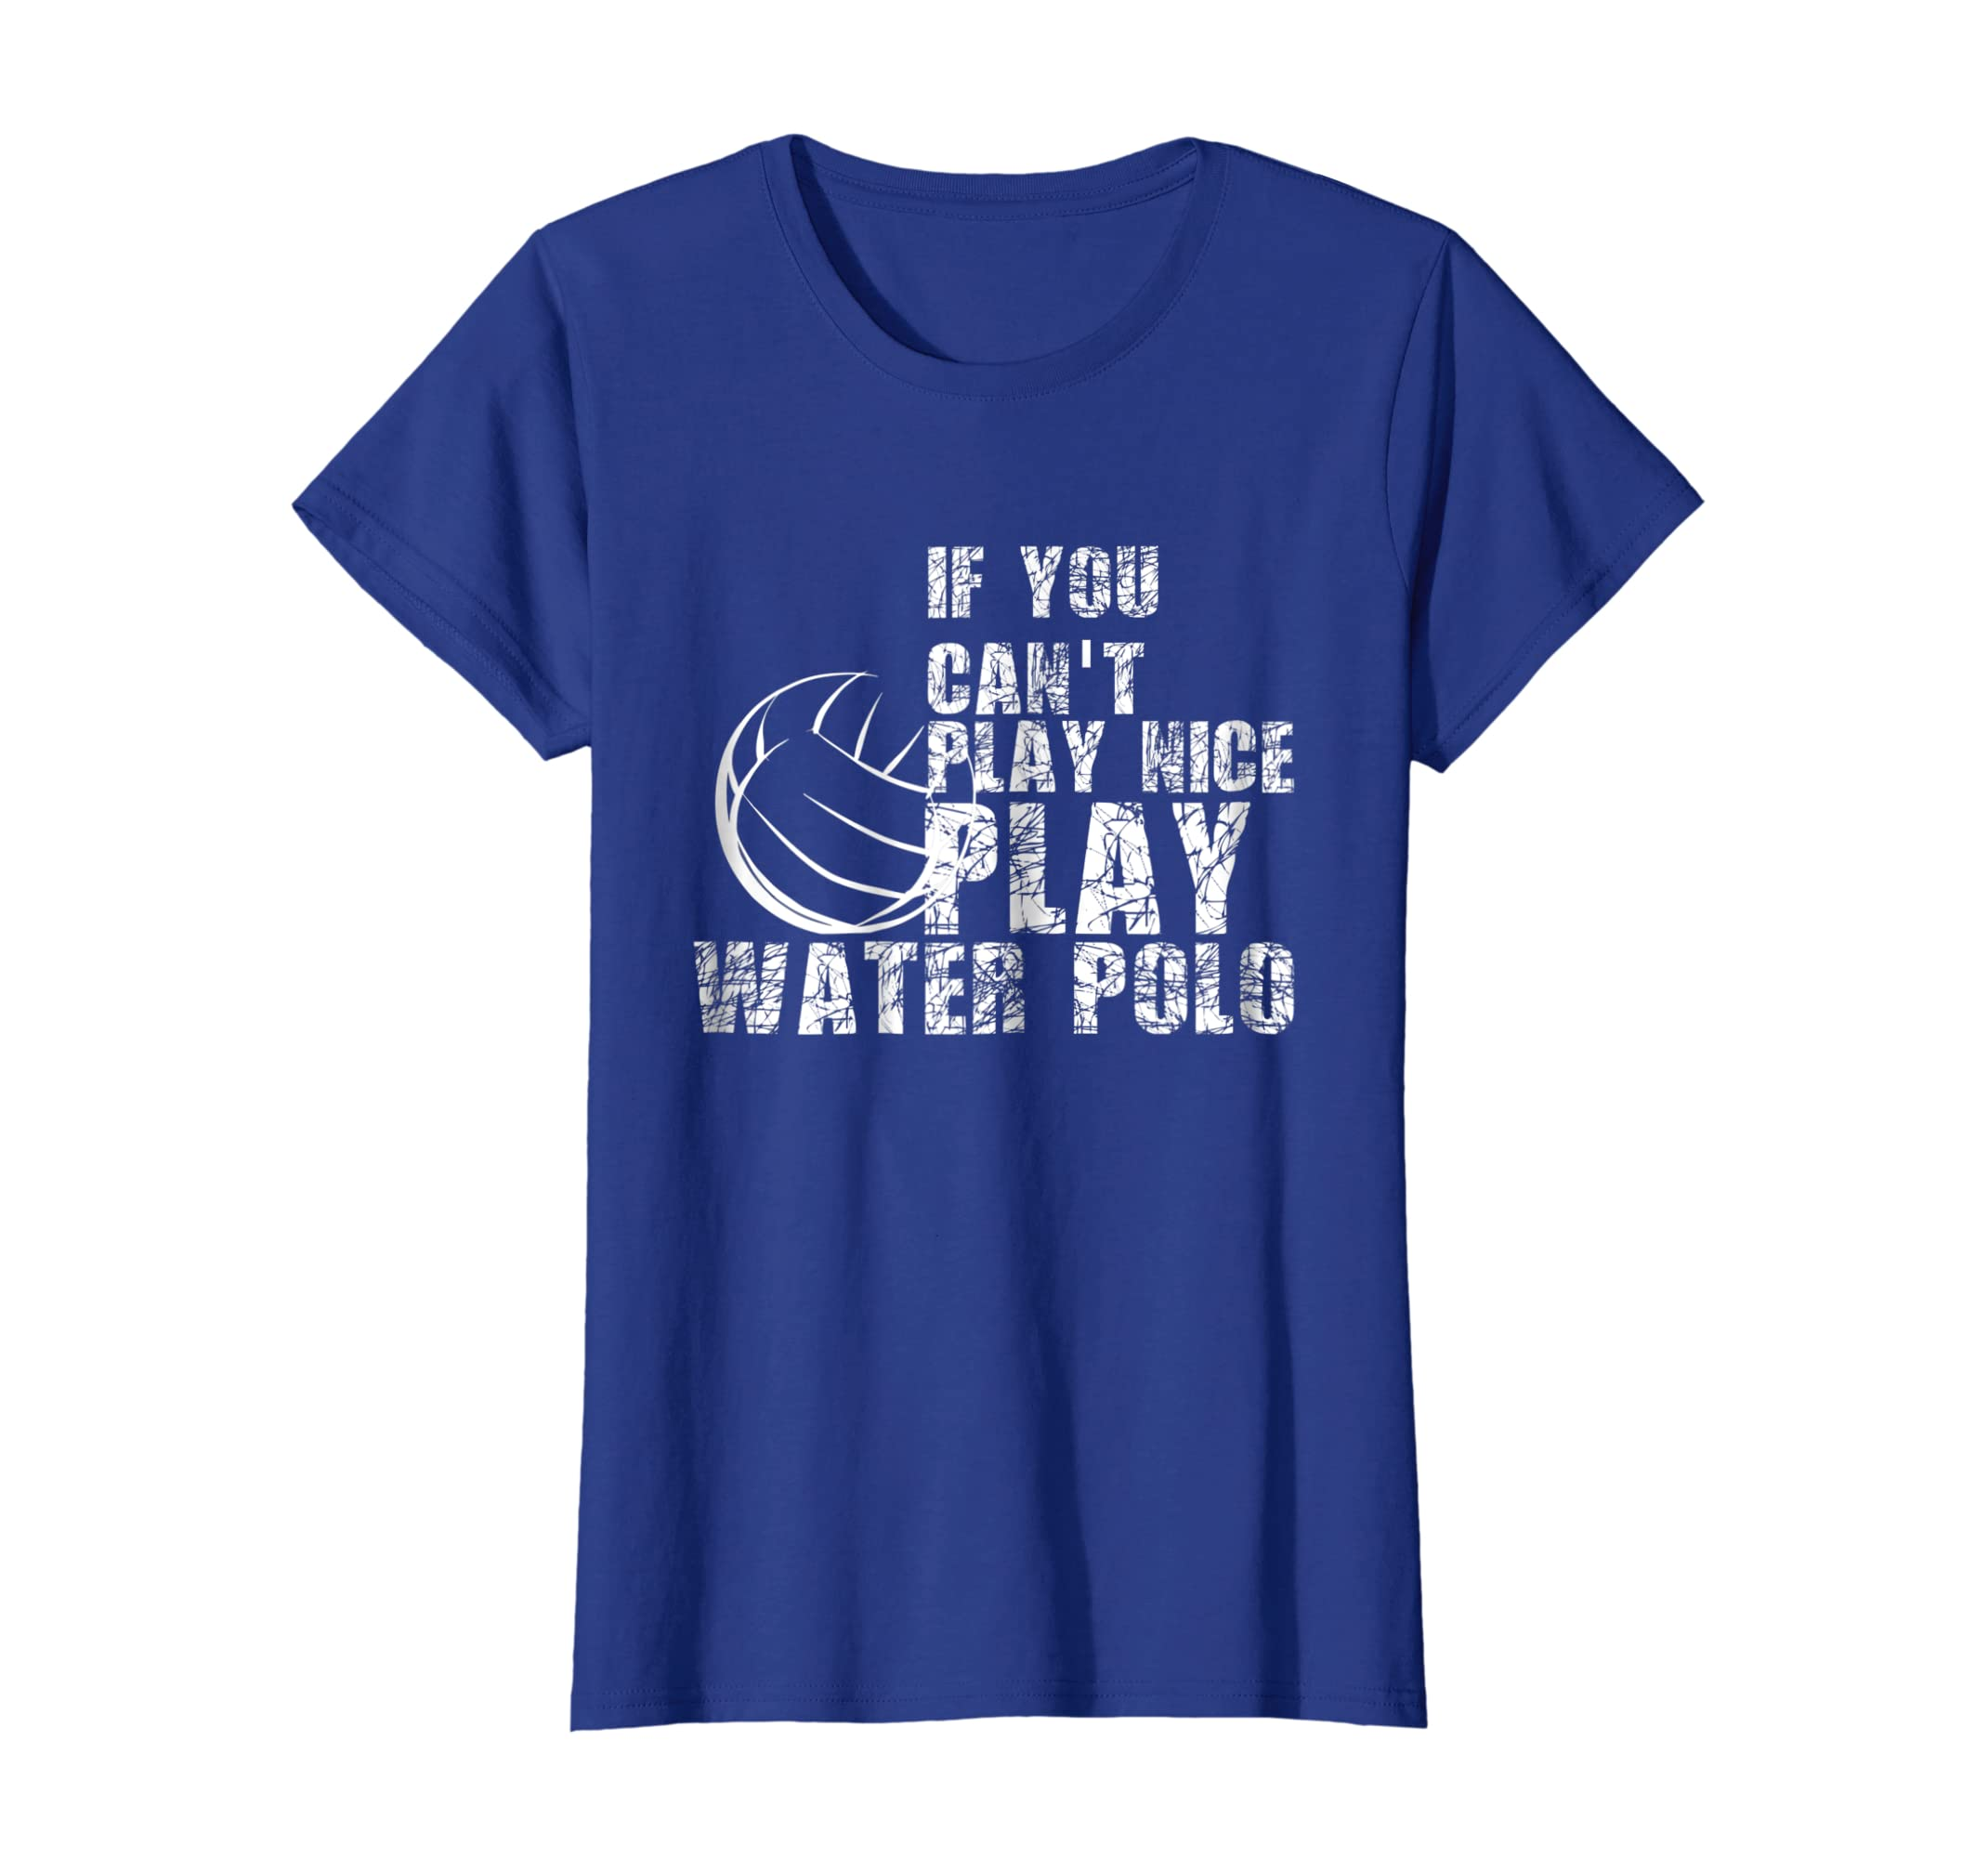 93d08f343 Amazon.com: Funny Water Polo T-Shirt for men and women: Clothing